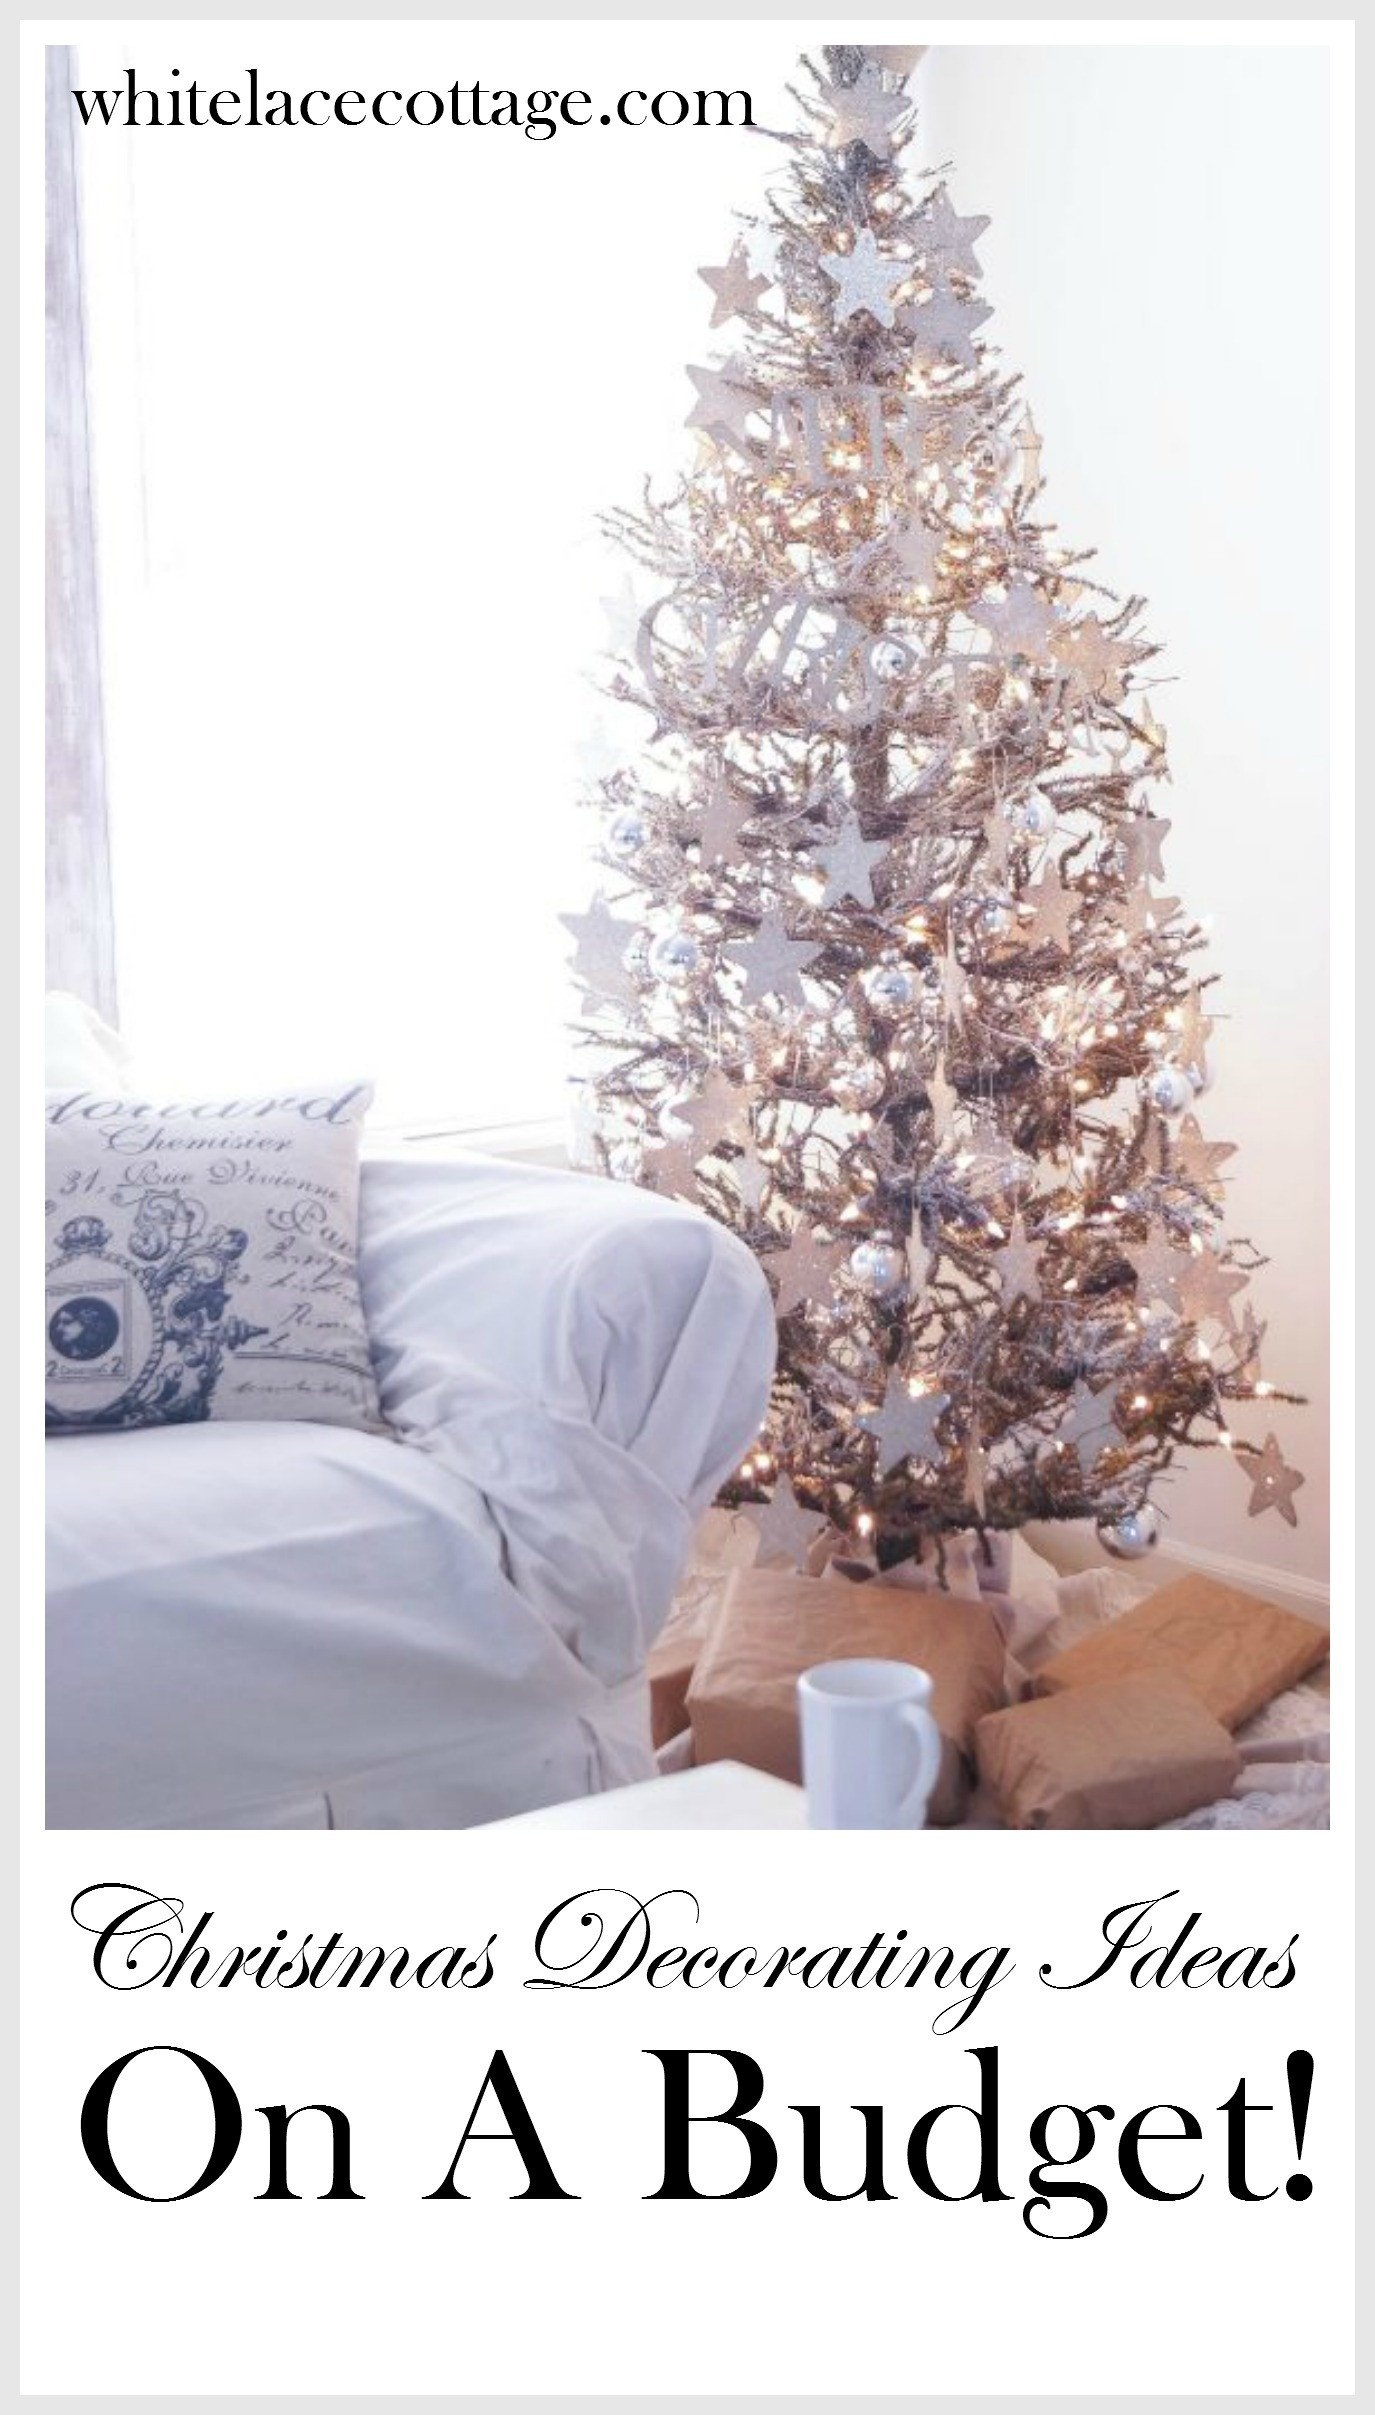 Decor Ideas On A Budget Awesome Christmas Decorating Ideas A Bud White Lace Cottage